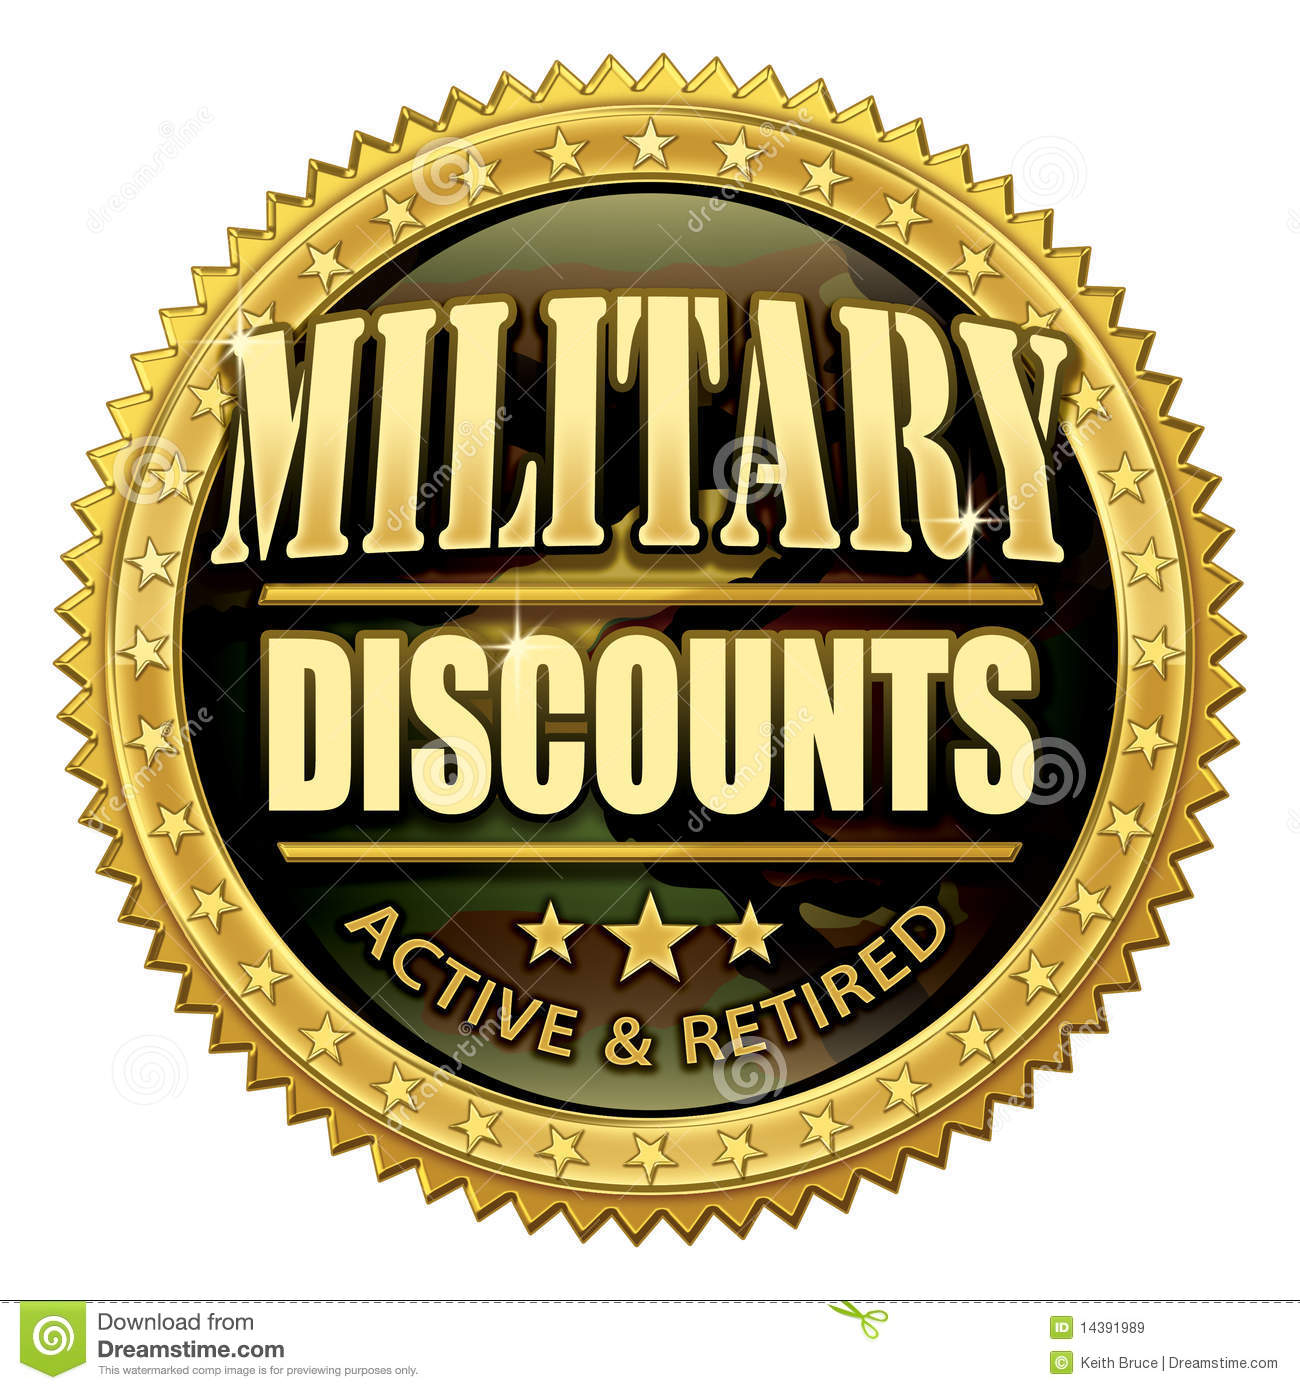 Military discounts vary by business, location, and brand, but 10% off is common. Car manufacturers tend to offer at least $ off select models — although they're often the latest models — for active-duty service members, veterans, and retirees.